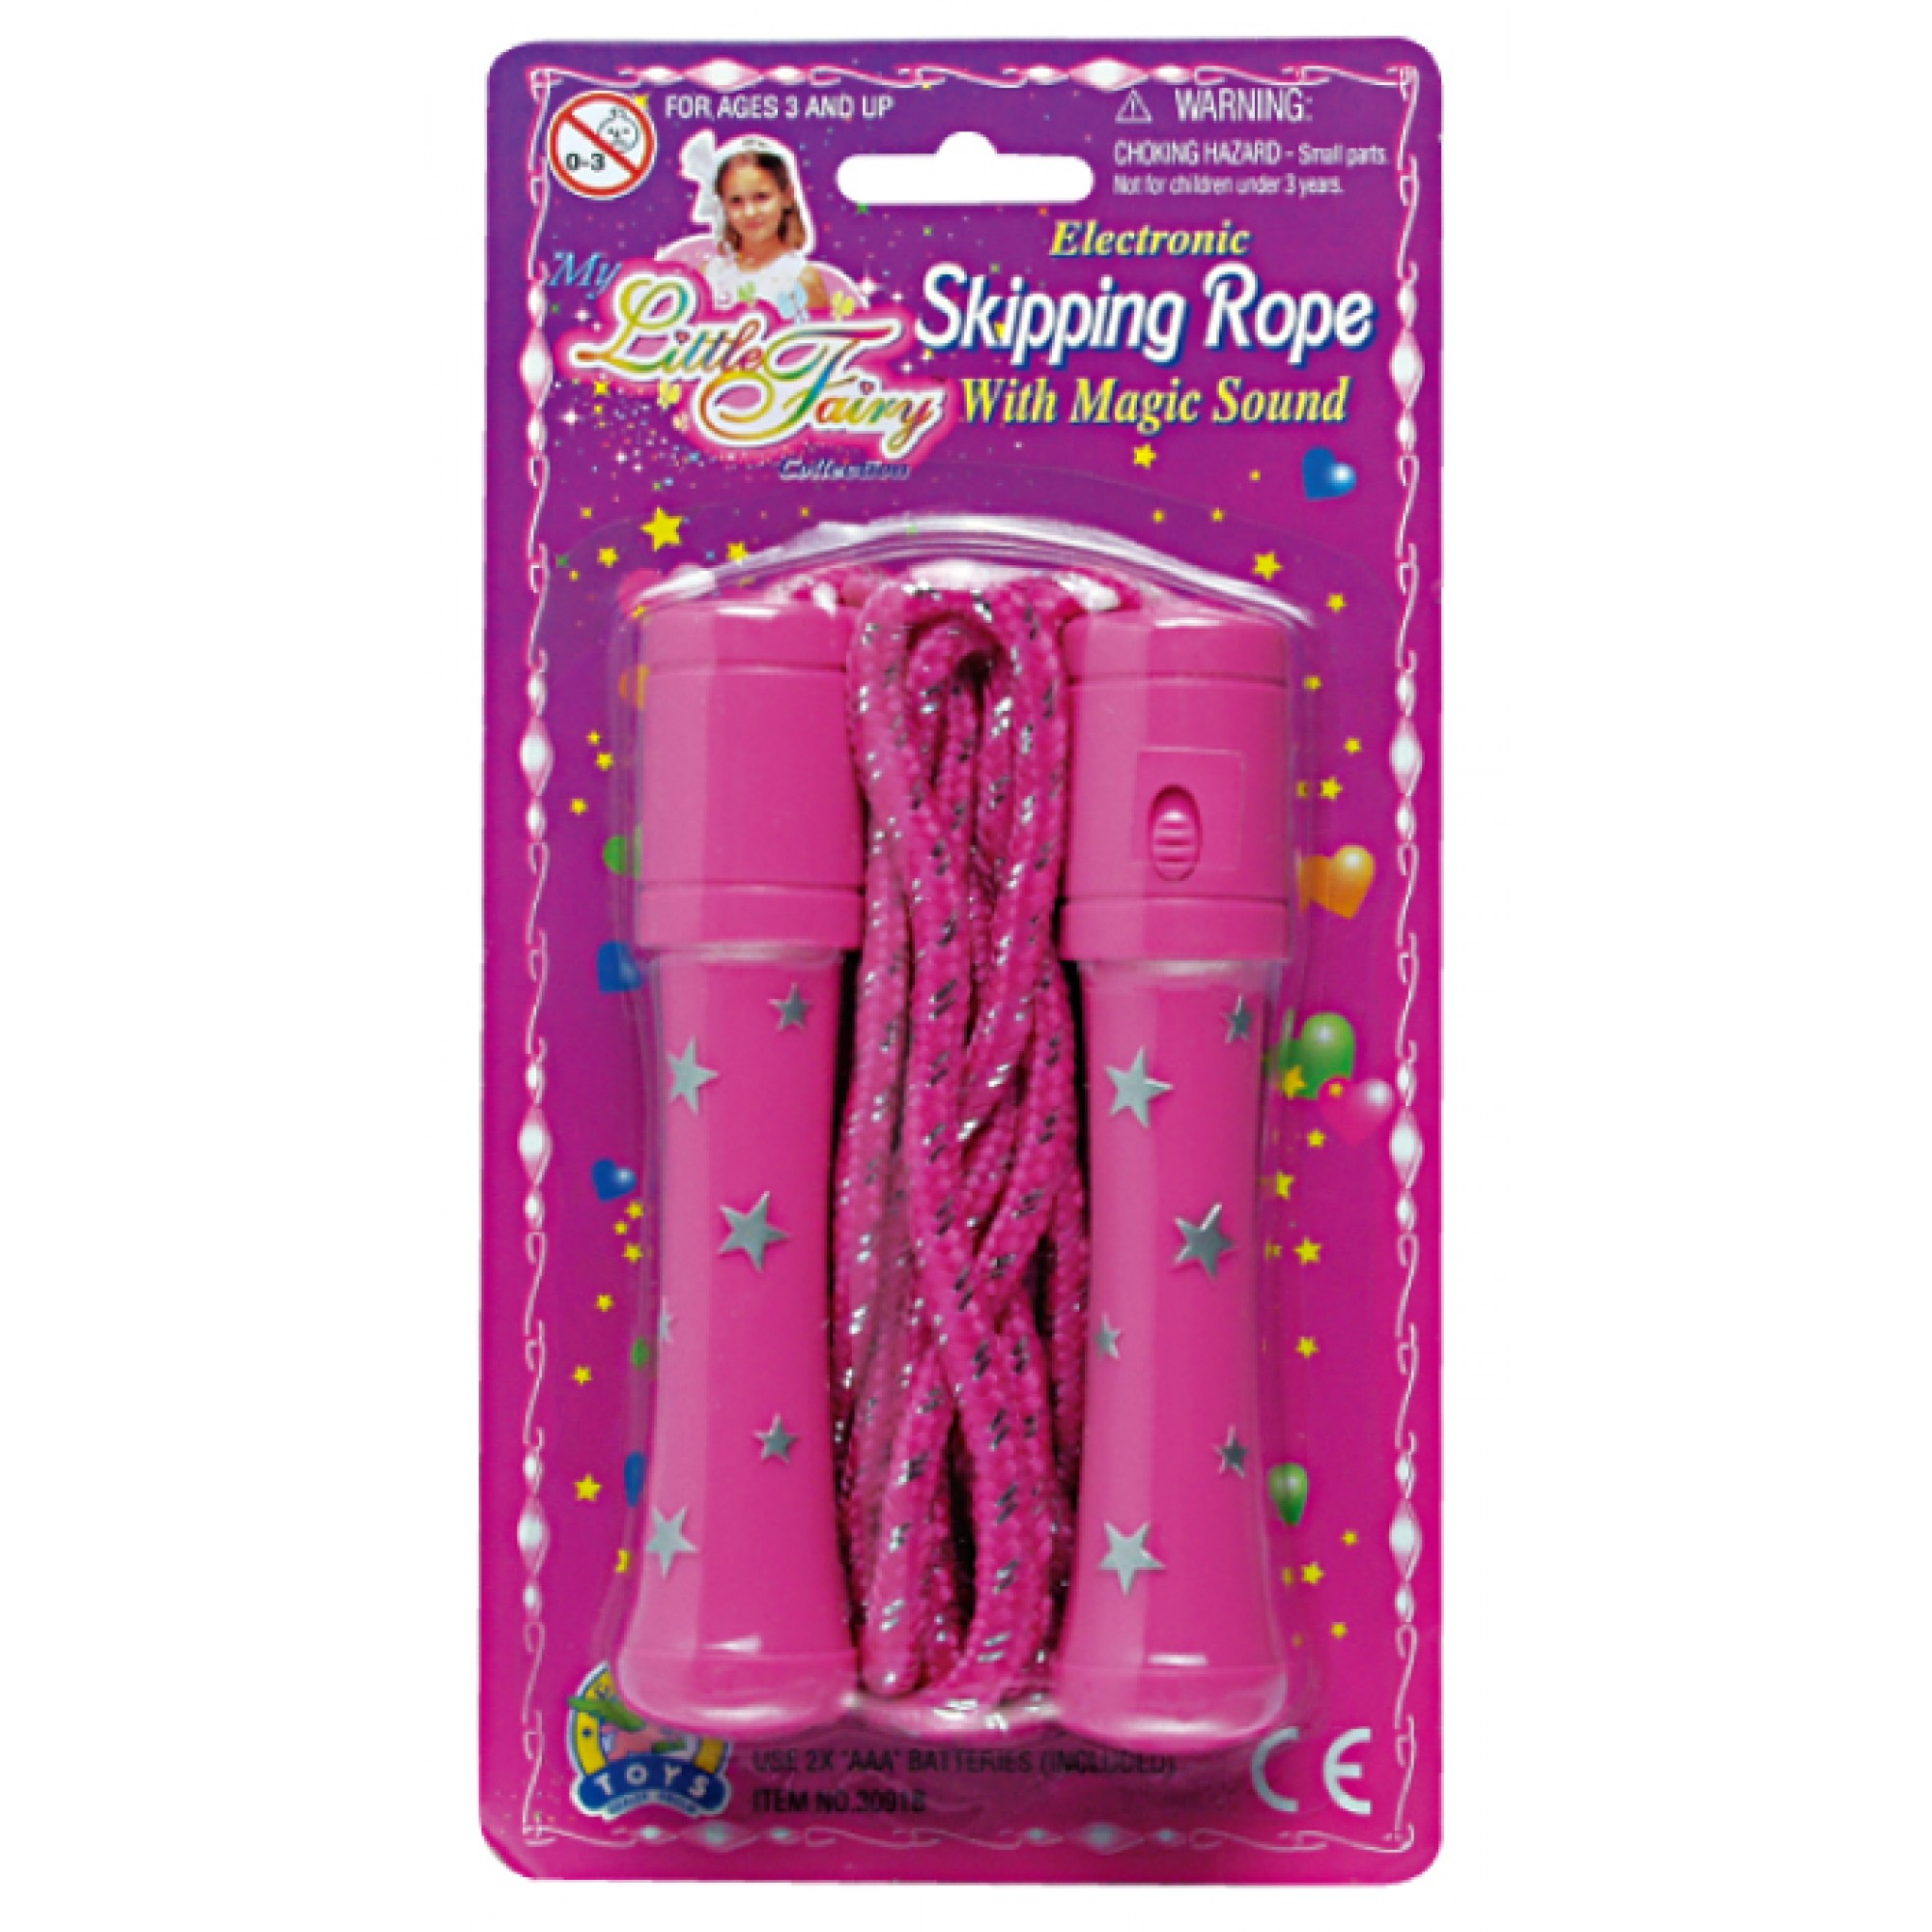 Electronic Skipping Rope W/Magic Sound